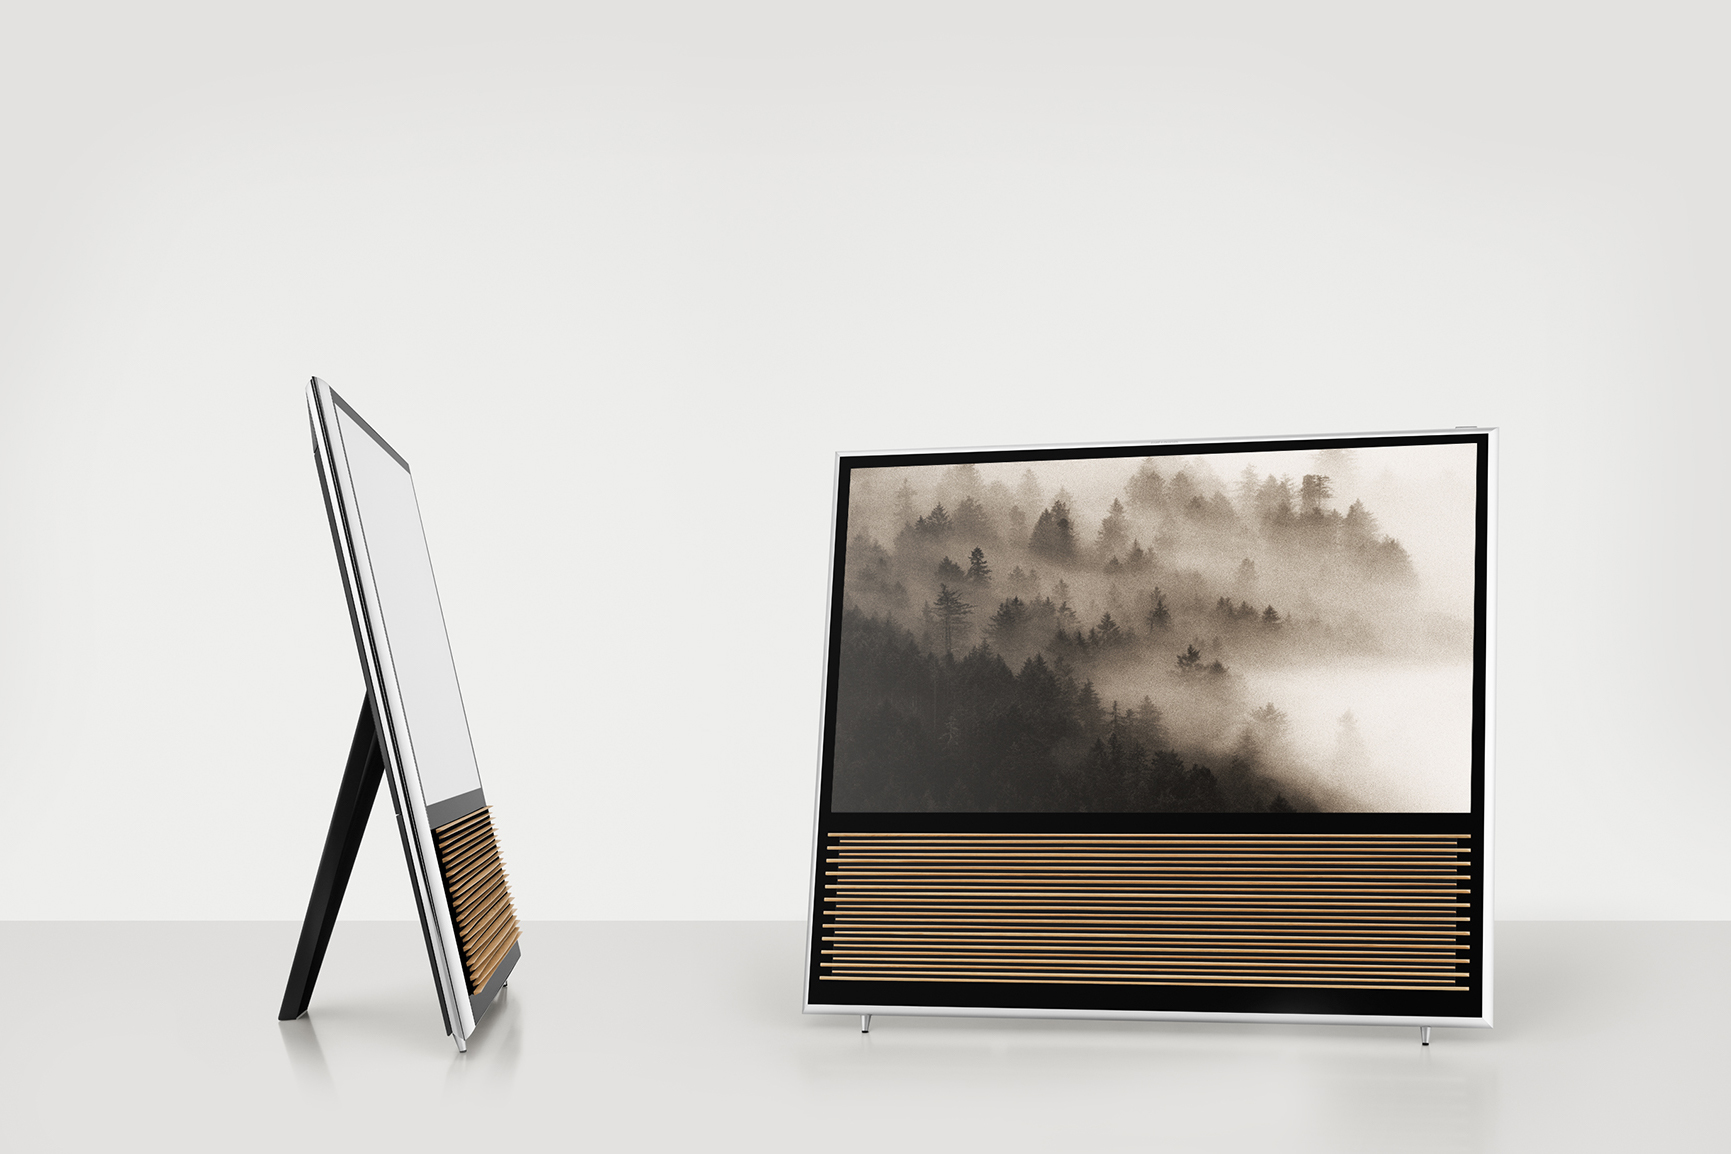 bang olufsen 39 s beovision 14 fuses nature with technology. Black Bedroom Furniture Sets. Home Design Ideas